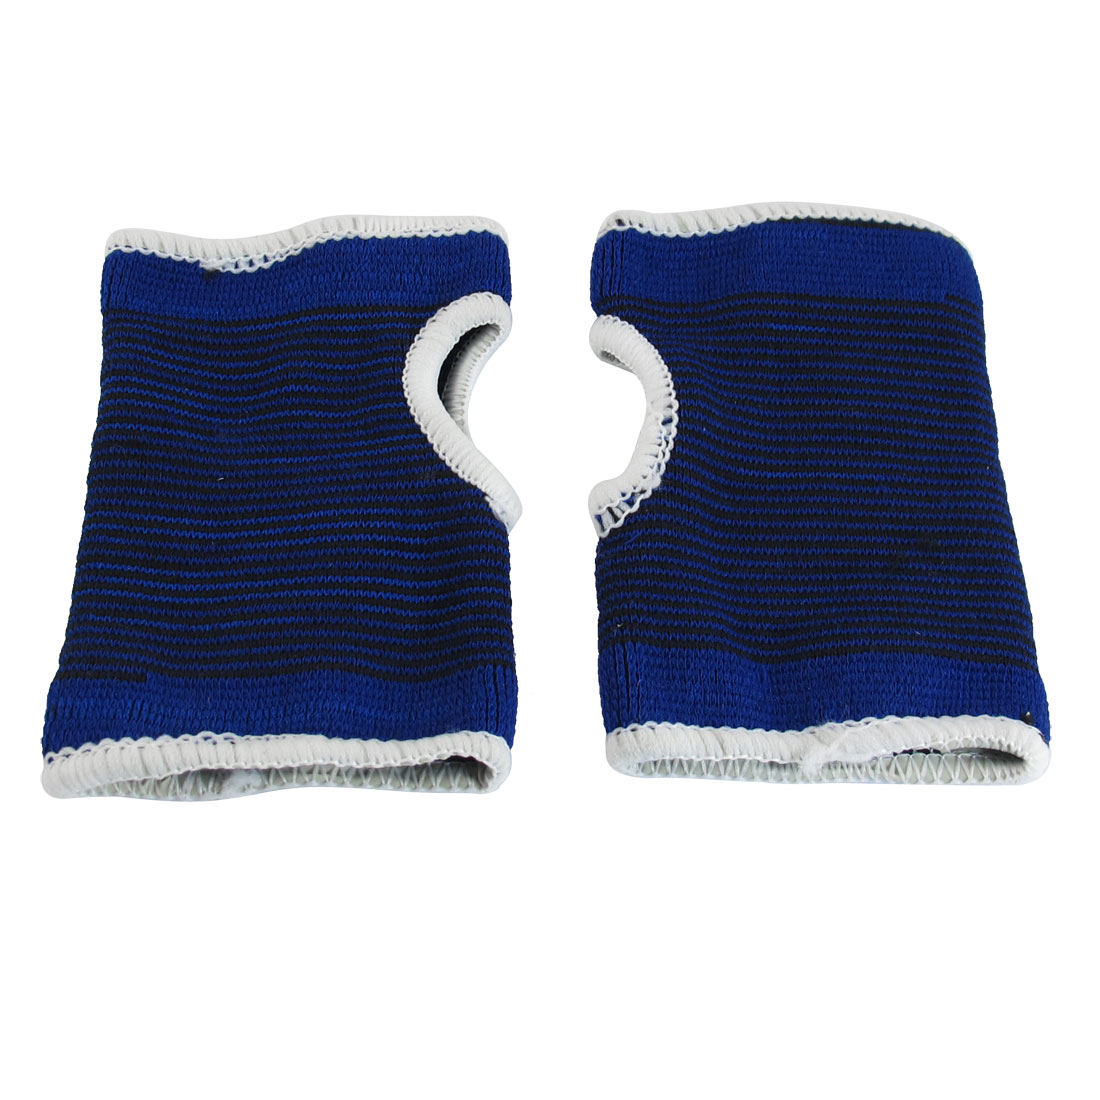 Pair Blue Black Stretch Striped Knitting Wrist Palm Protective Support